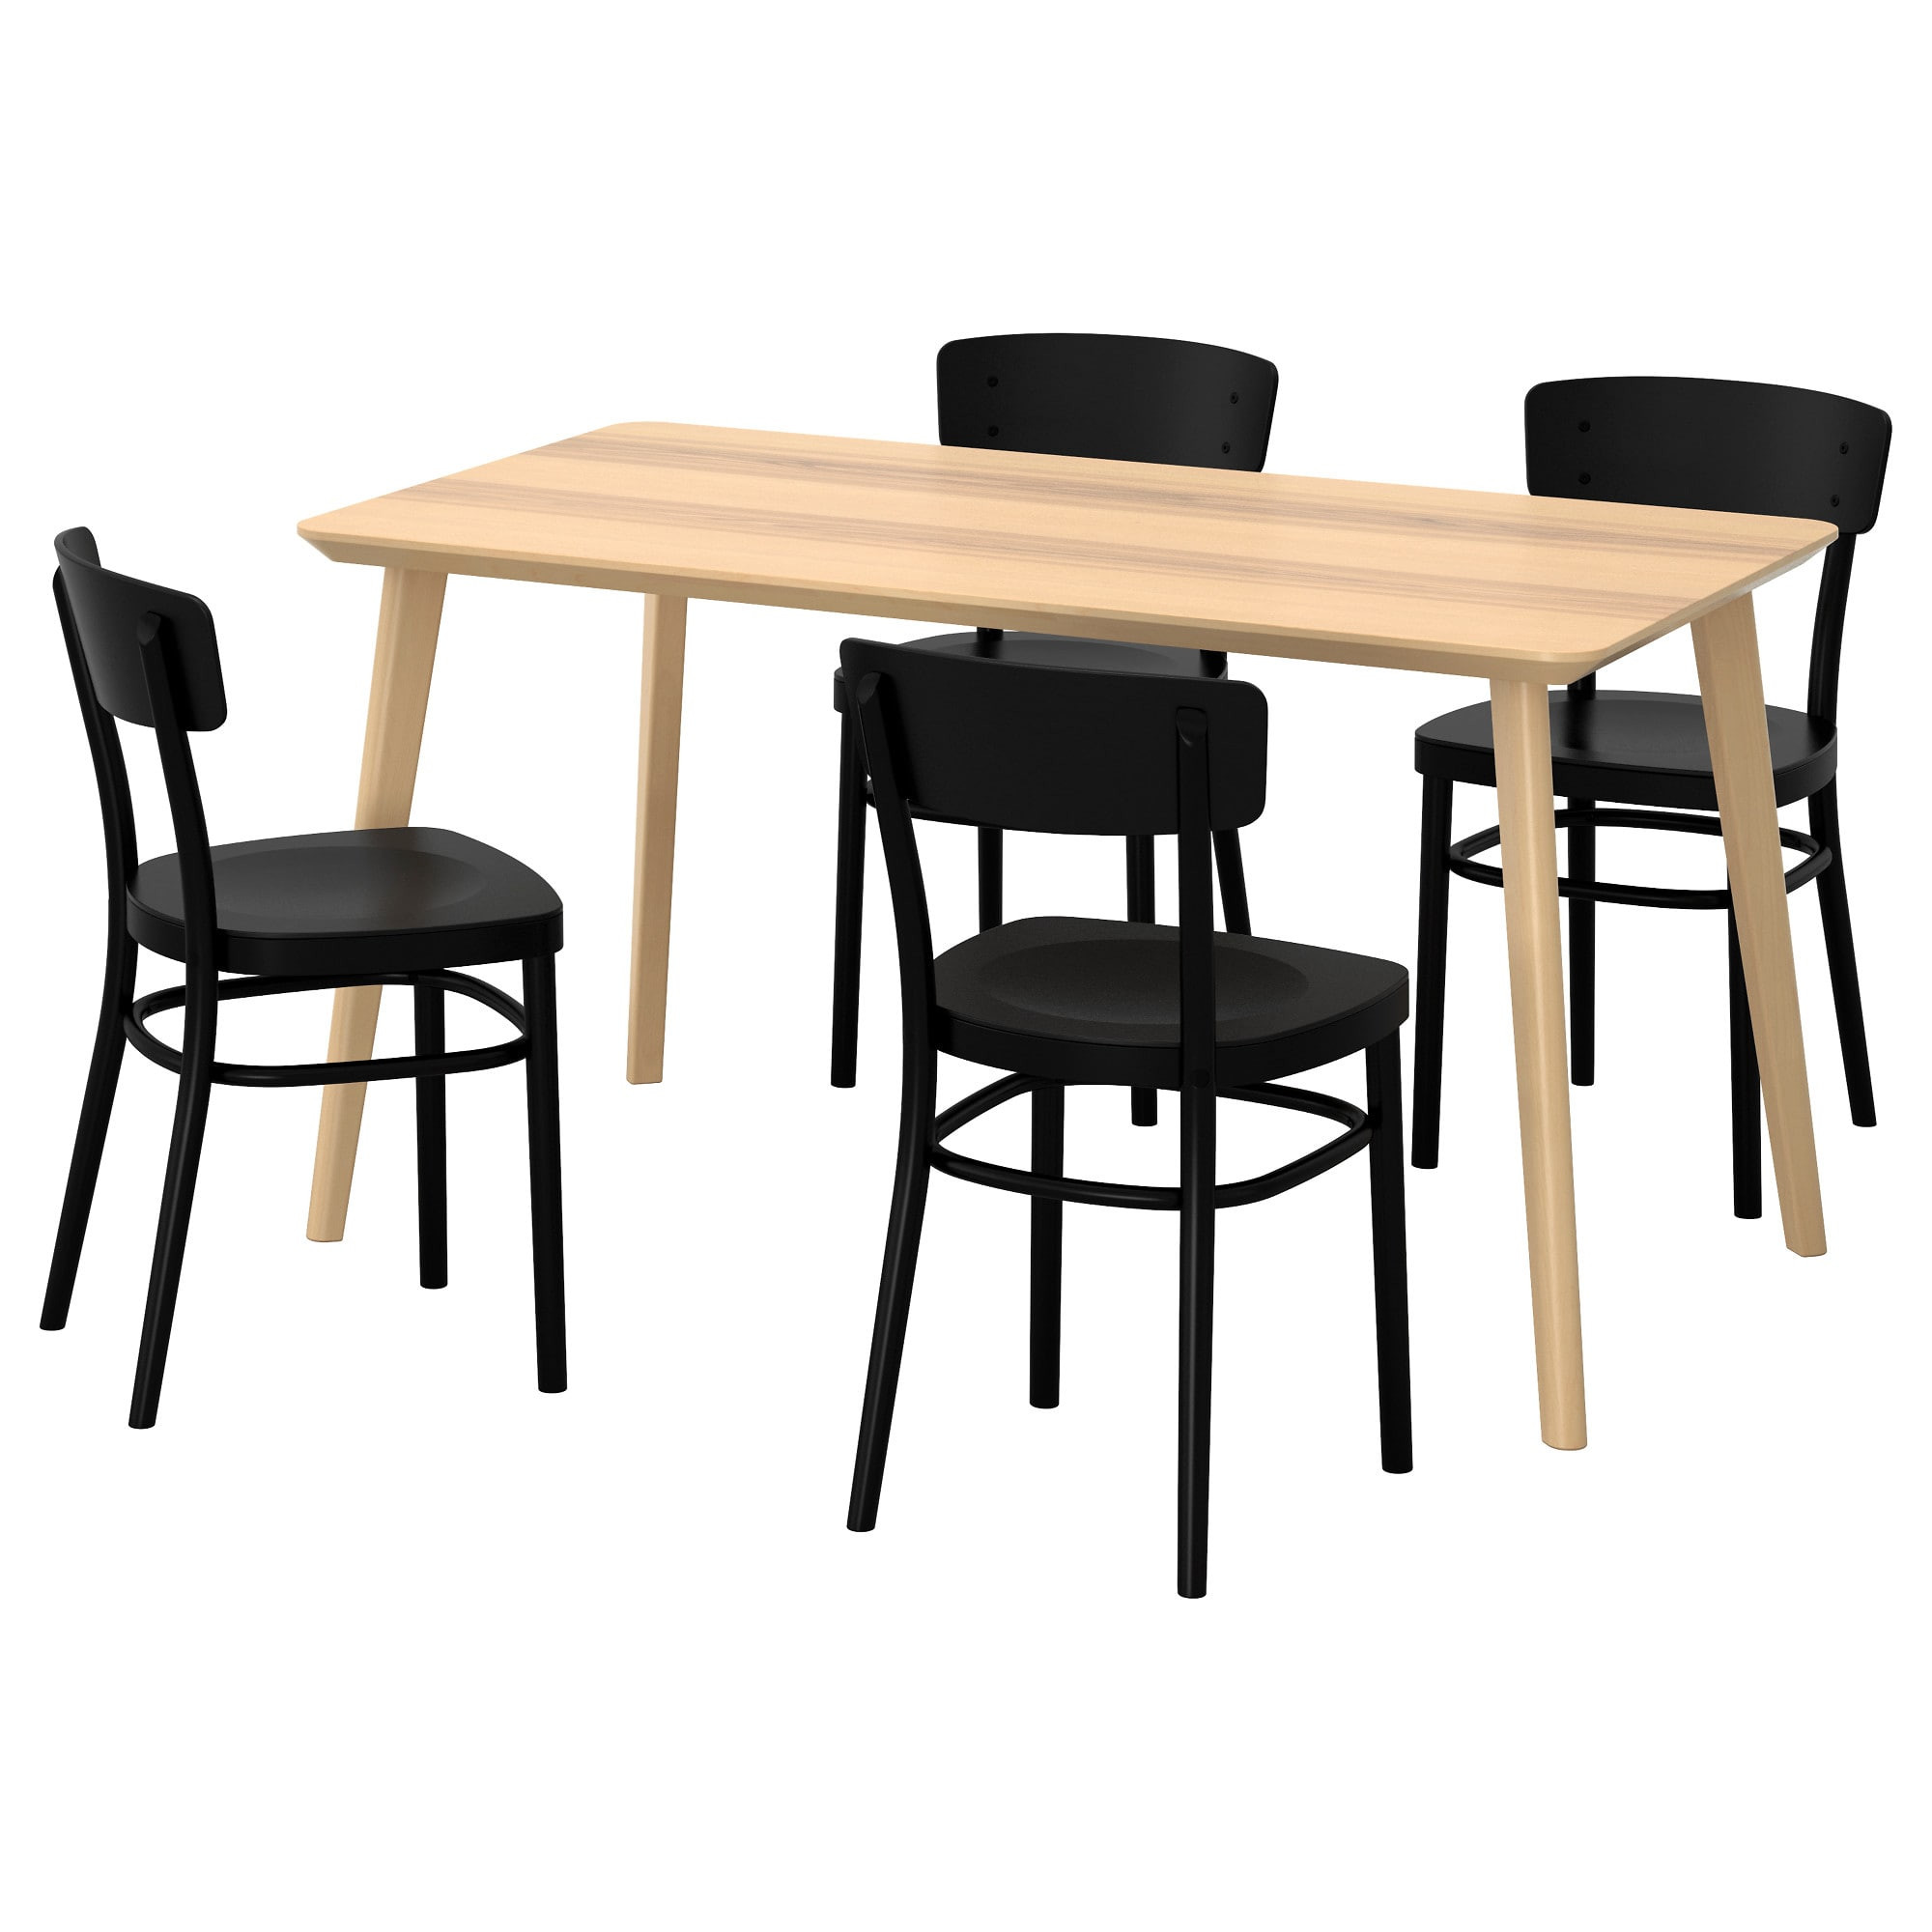 Best ideas about Ikea Dining Table . Save or Pin Dining Table Sets & Dining Room Sets Now.